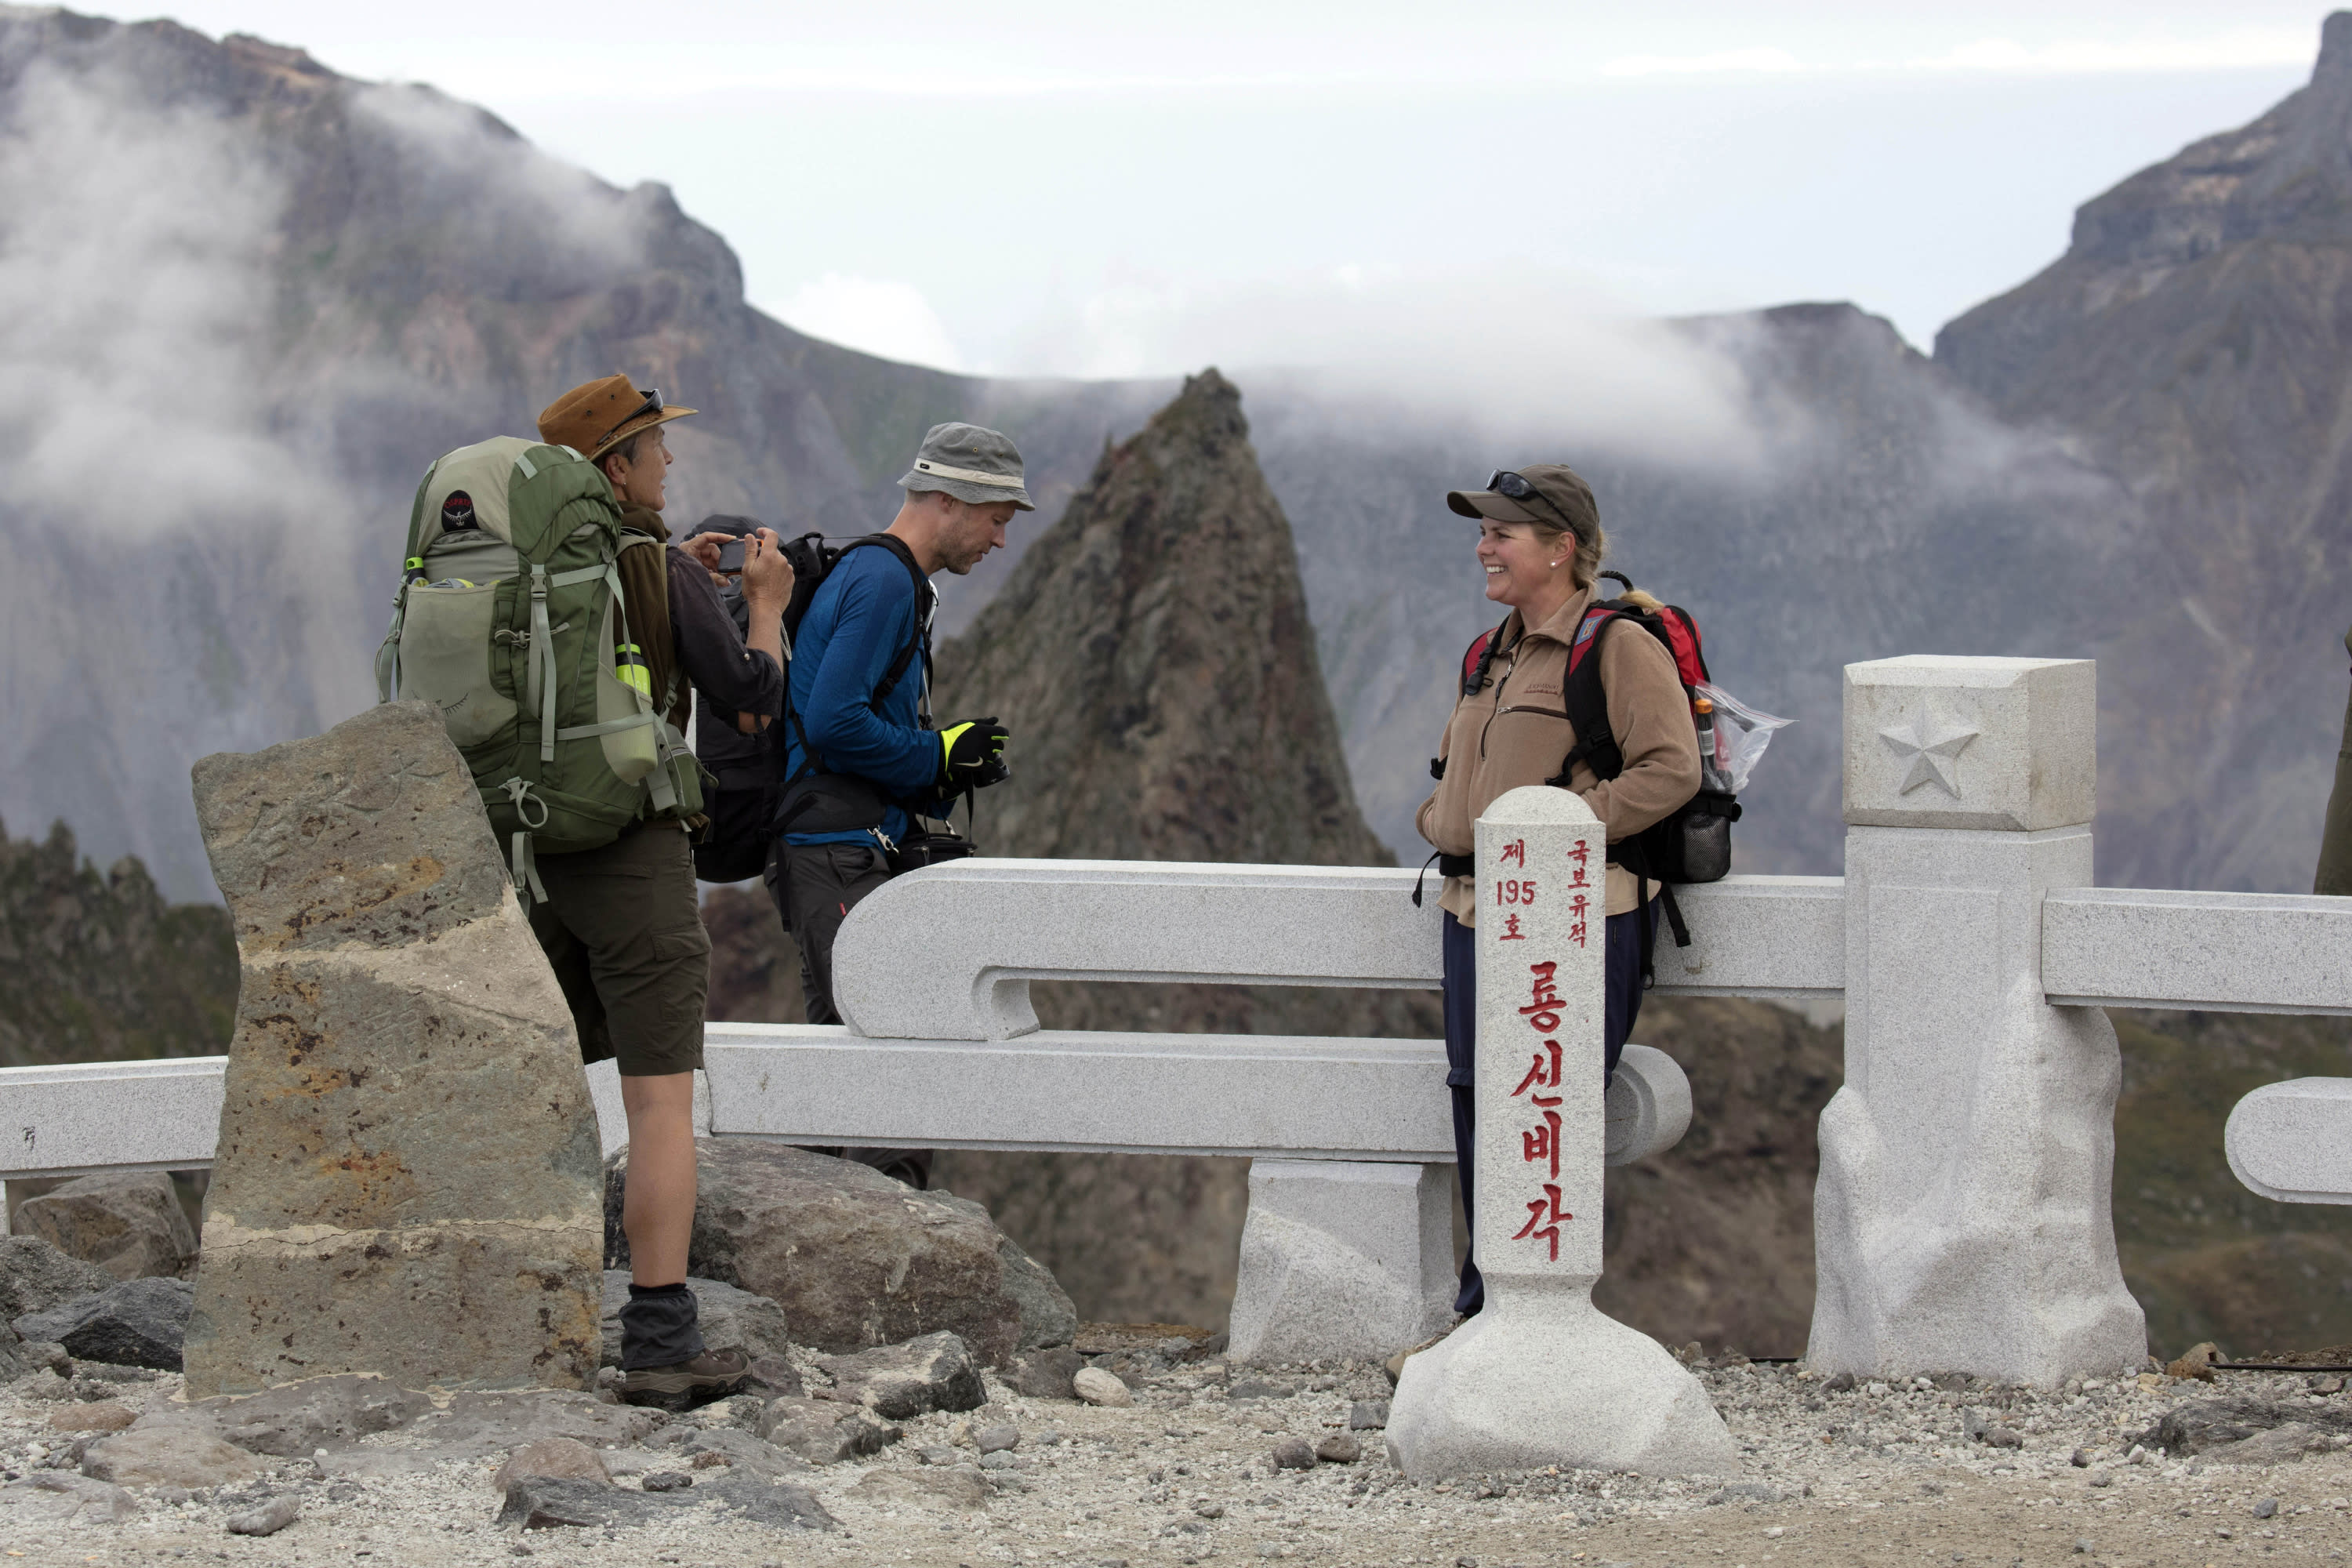 In this Saturday, Aug. 18, 2018, photo, Sinead of Australia, right, chats with Paula of Australia, left, and Tarjei Naess Skrede of Norway during a hike arranged by Roger Shepherd of Hike Korea on Mount Paektu in North Korea. Hoping to open up a side of North Korea rarely seen by outsiders, Shepherd, a New Zealander who has extensive experience climbing the mountains of North and South Korea is leading the first group of foreign tourists allowed to trek off road and camp out under the stars on Mount Paektu, a huge volcano that straddles the border that separates China and North Korea. (AP Photo/Ng Han Guan)